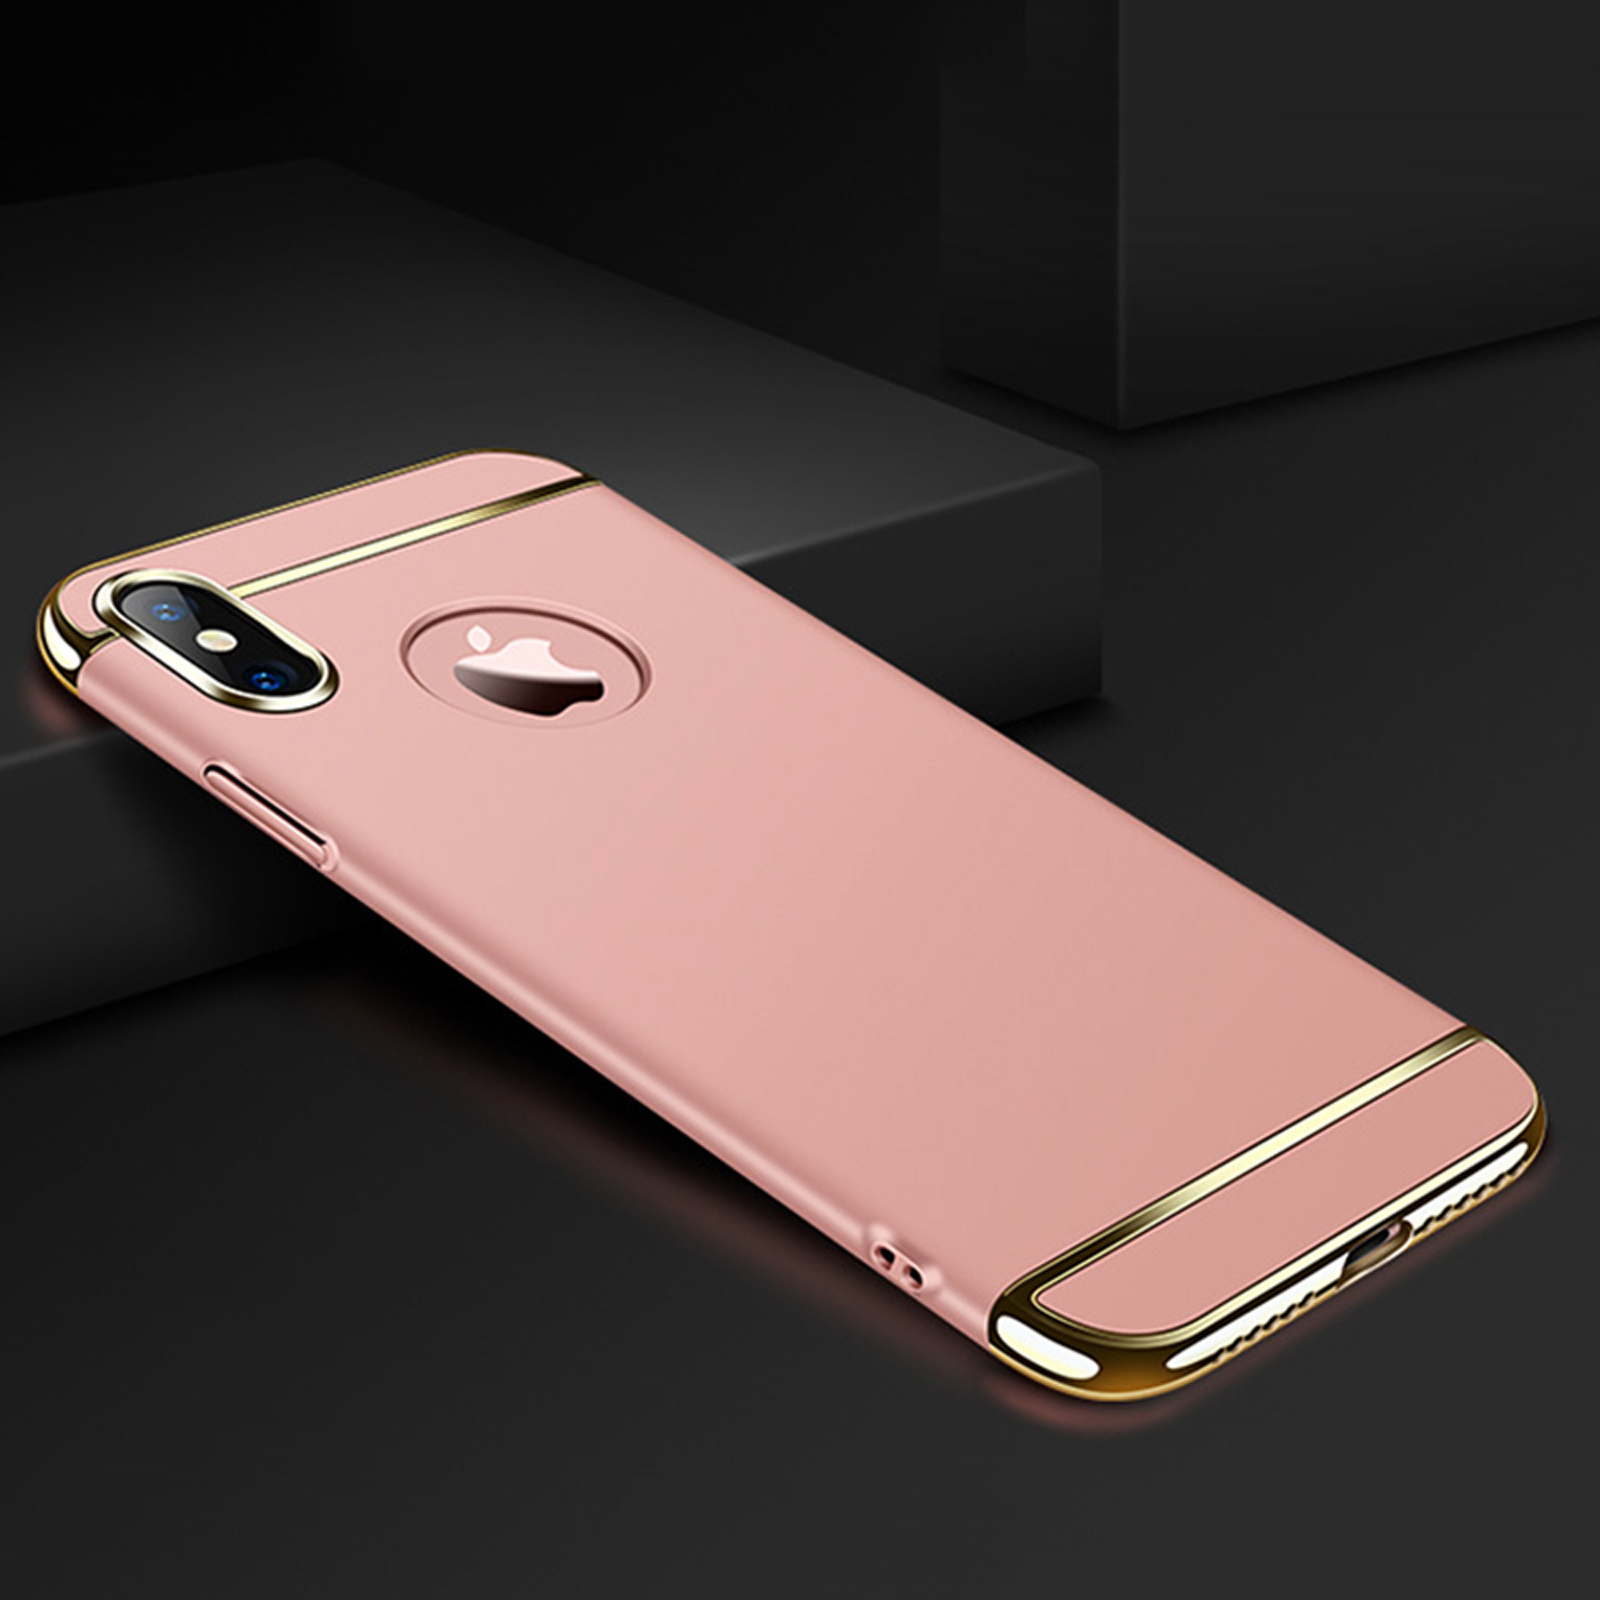 Luxury-Matte-Case-Tempered-Glass-Cover-For-Apple-iPhone-X-XS-XR-Max-10-8-7-6s-6 thumbnail 59